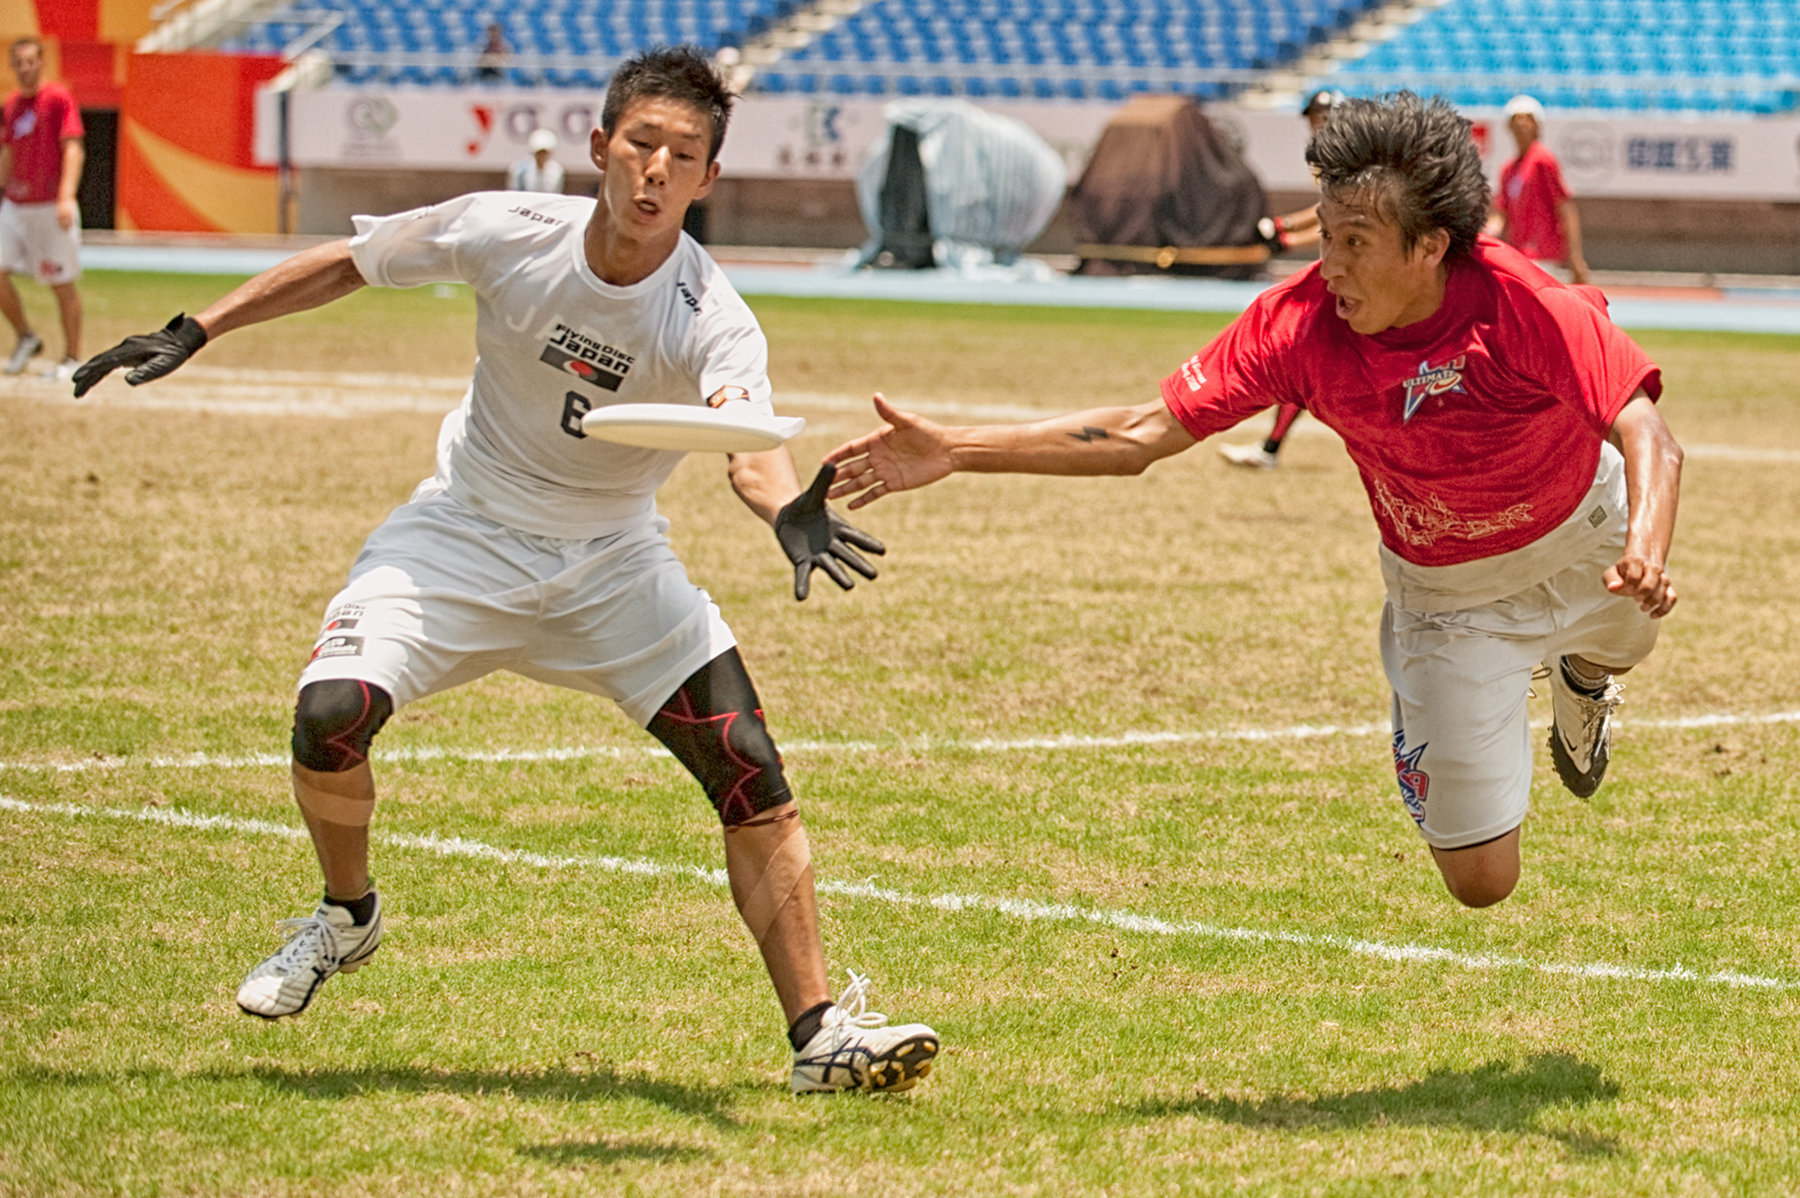 USA and Japan compete in Ultimate Frisbee Flying Disc competition, World Games, Kaohsiung, Taiwan, July 21, 2009